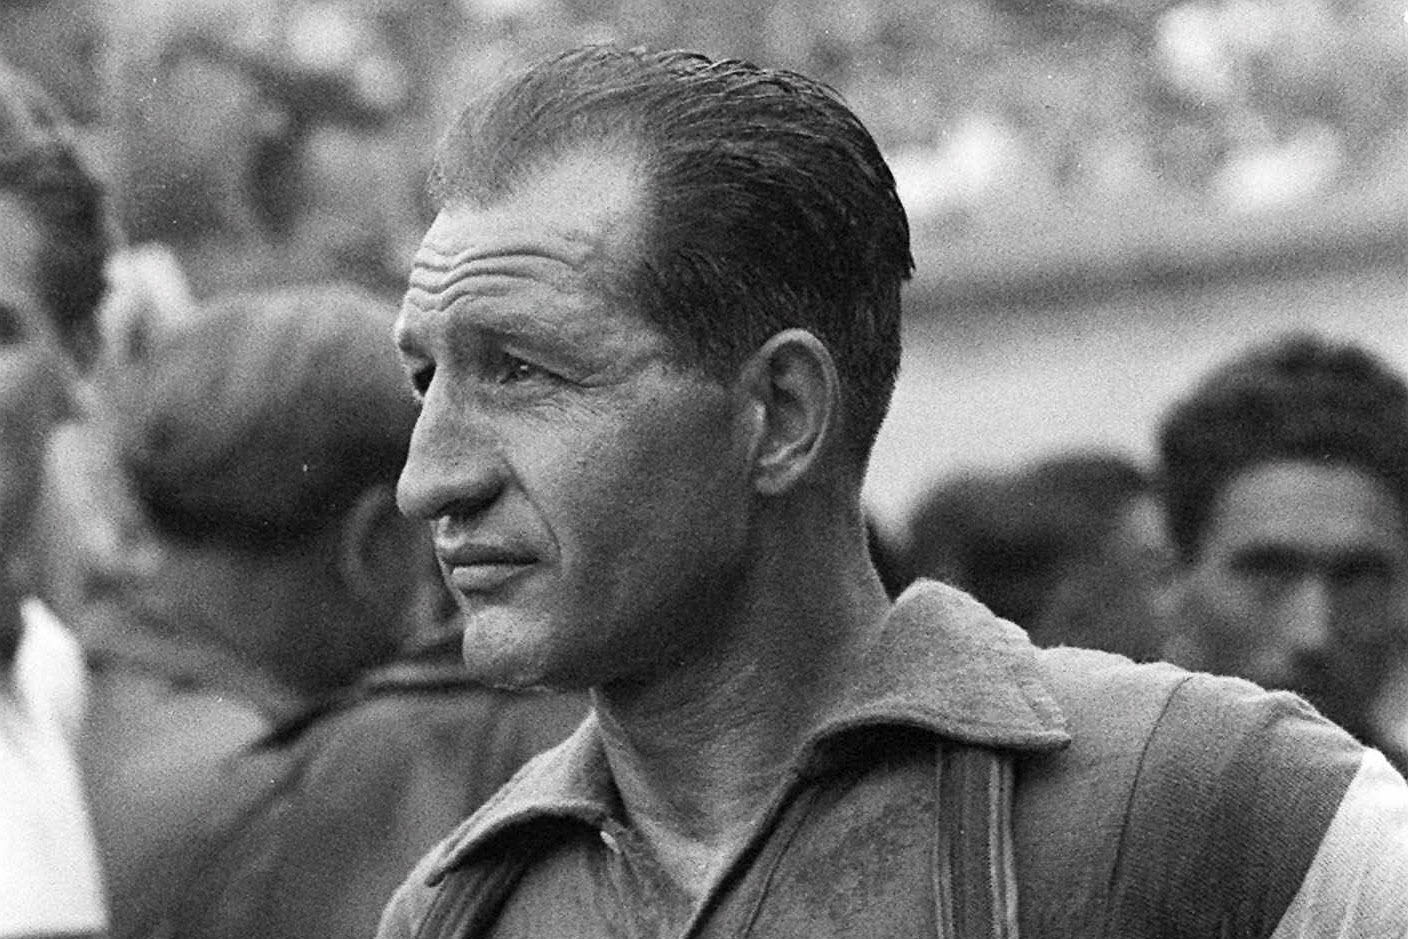 Italian cycling great Gino Bartali in 1953. During the German occupation of Italy, the champion cyclist aided the Jewish-Christian rescue network in his hometown of Florence and the surrounding area by shuffling forged documents and papers hidden in the tubes and seat of his bike. Bartali, who died in 2000, rarely spoke about it for the rest of his life, but his son Andrea Bartali led an effort to gain recognition for what his father did. (AP Photo)